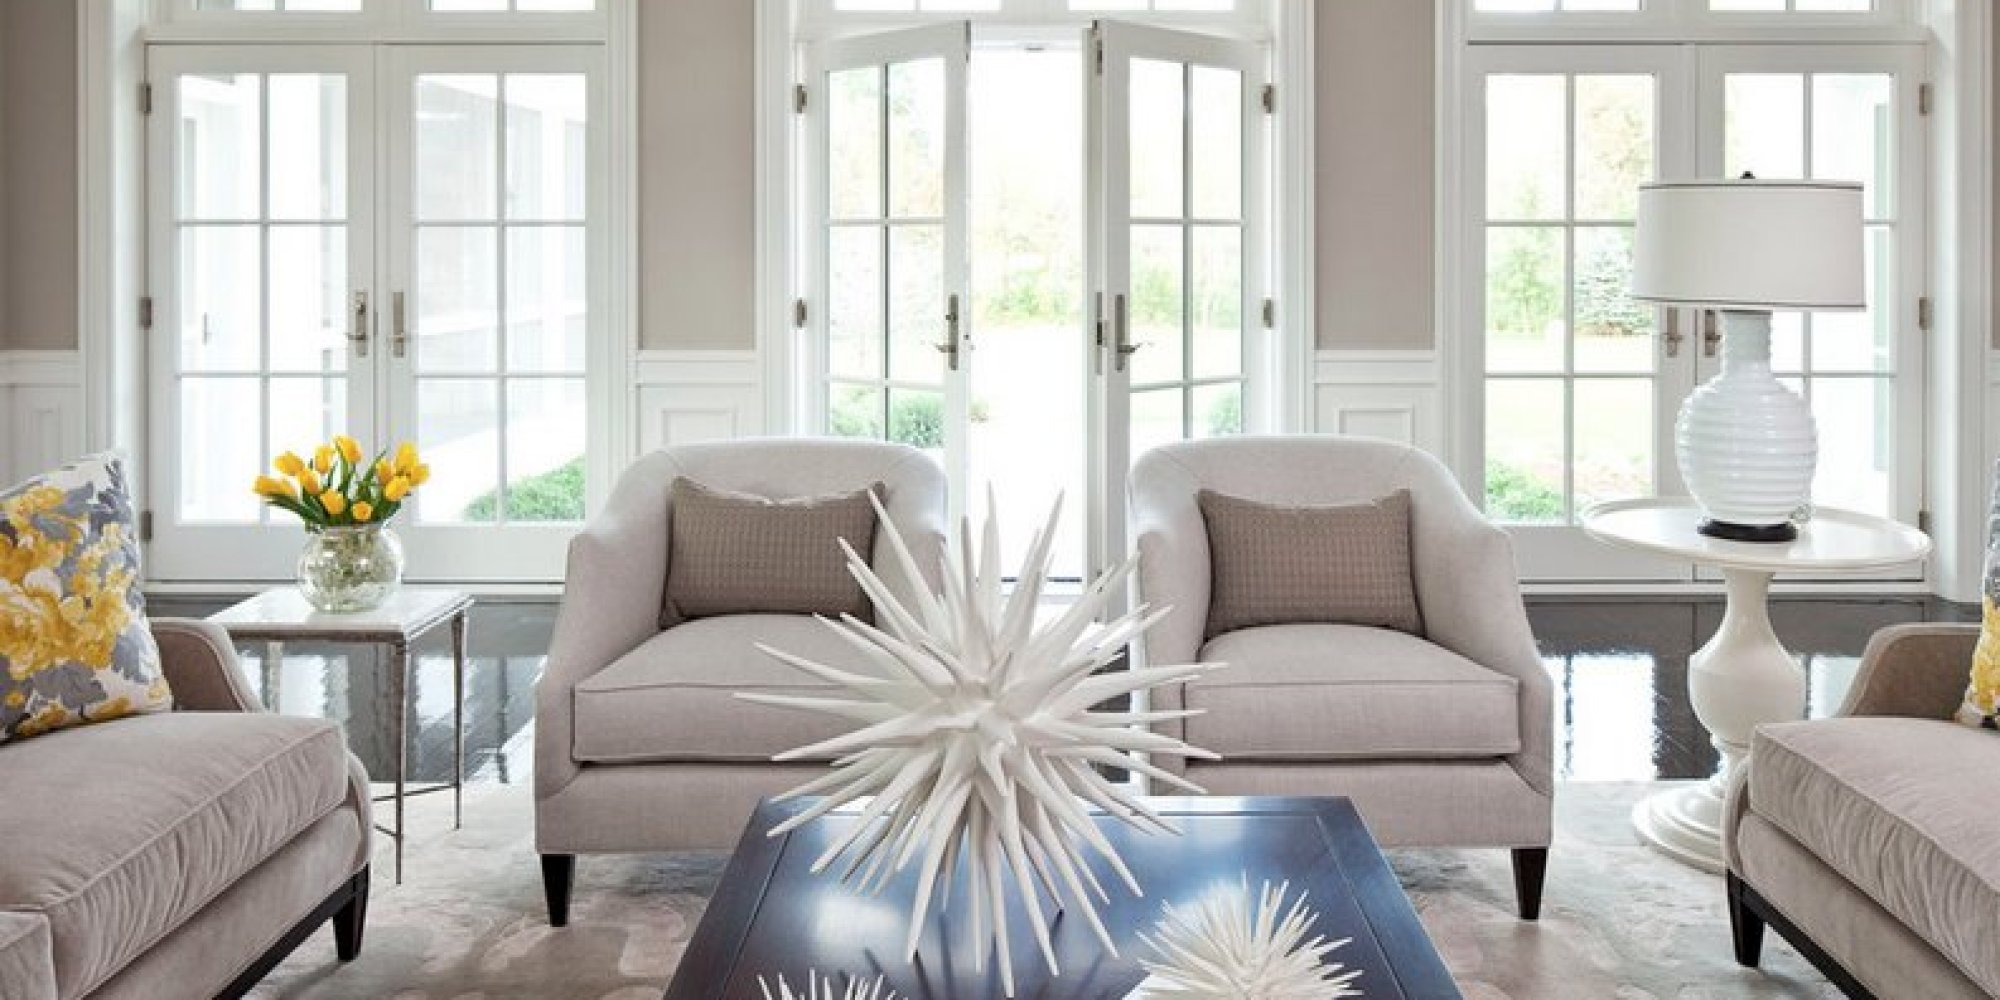 Neutral Colors For Living Room Walls The 8 Best Neutral Paint Colors Thatll Work In Any Home No